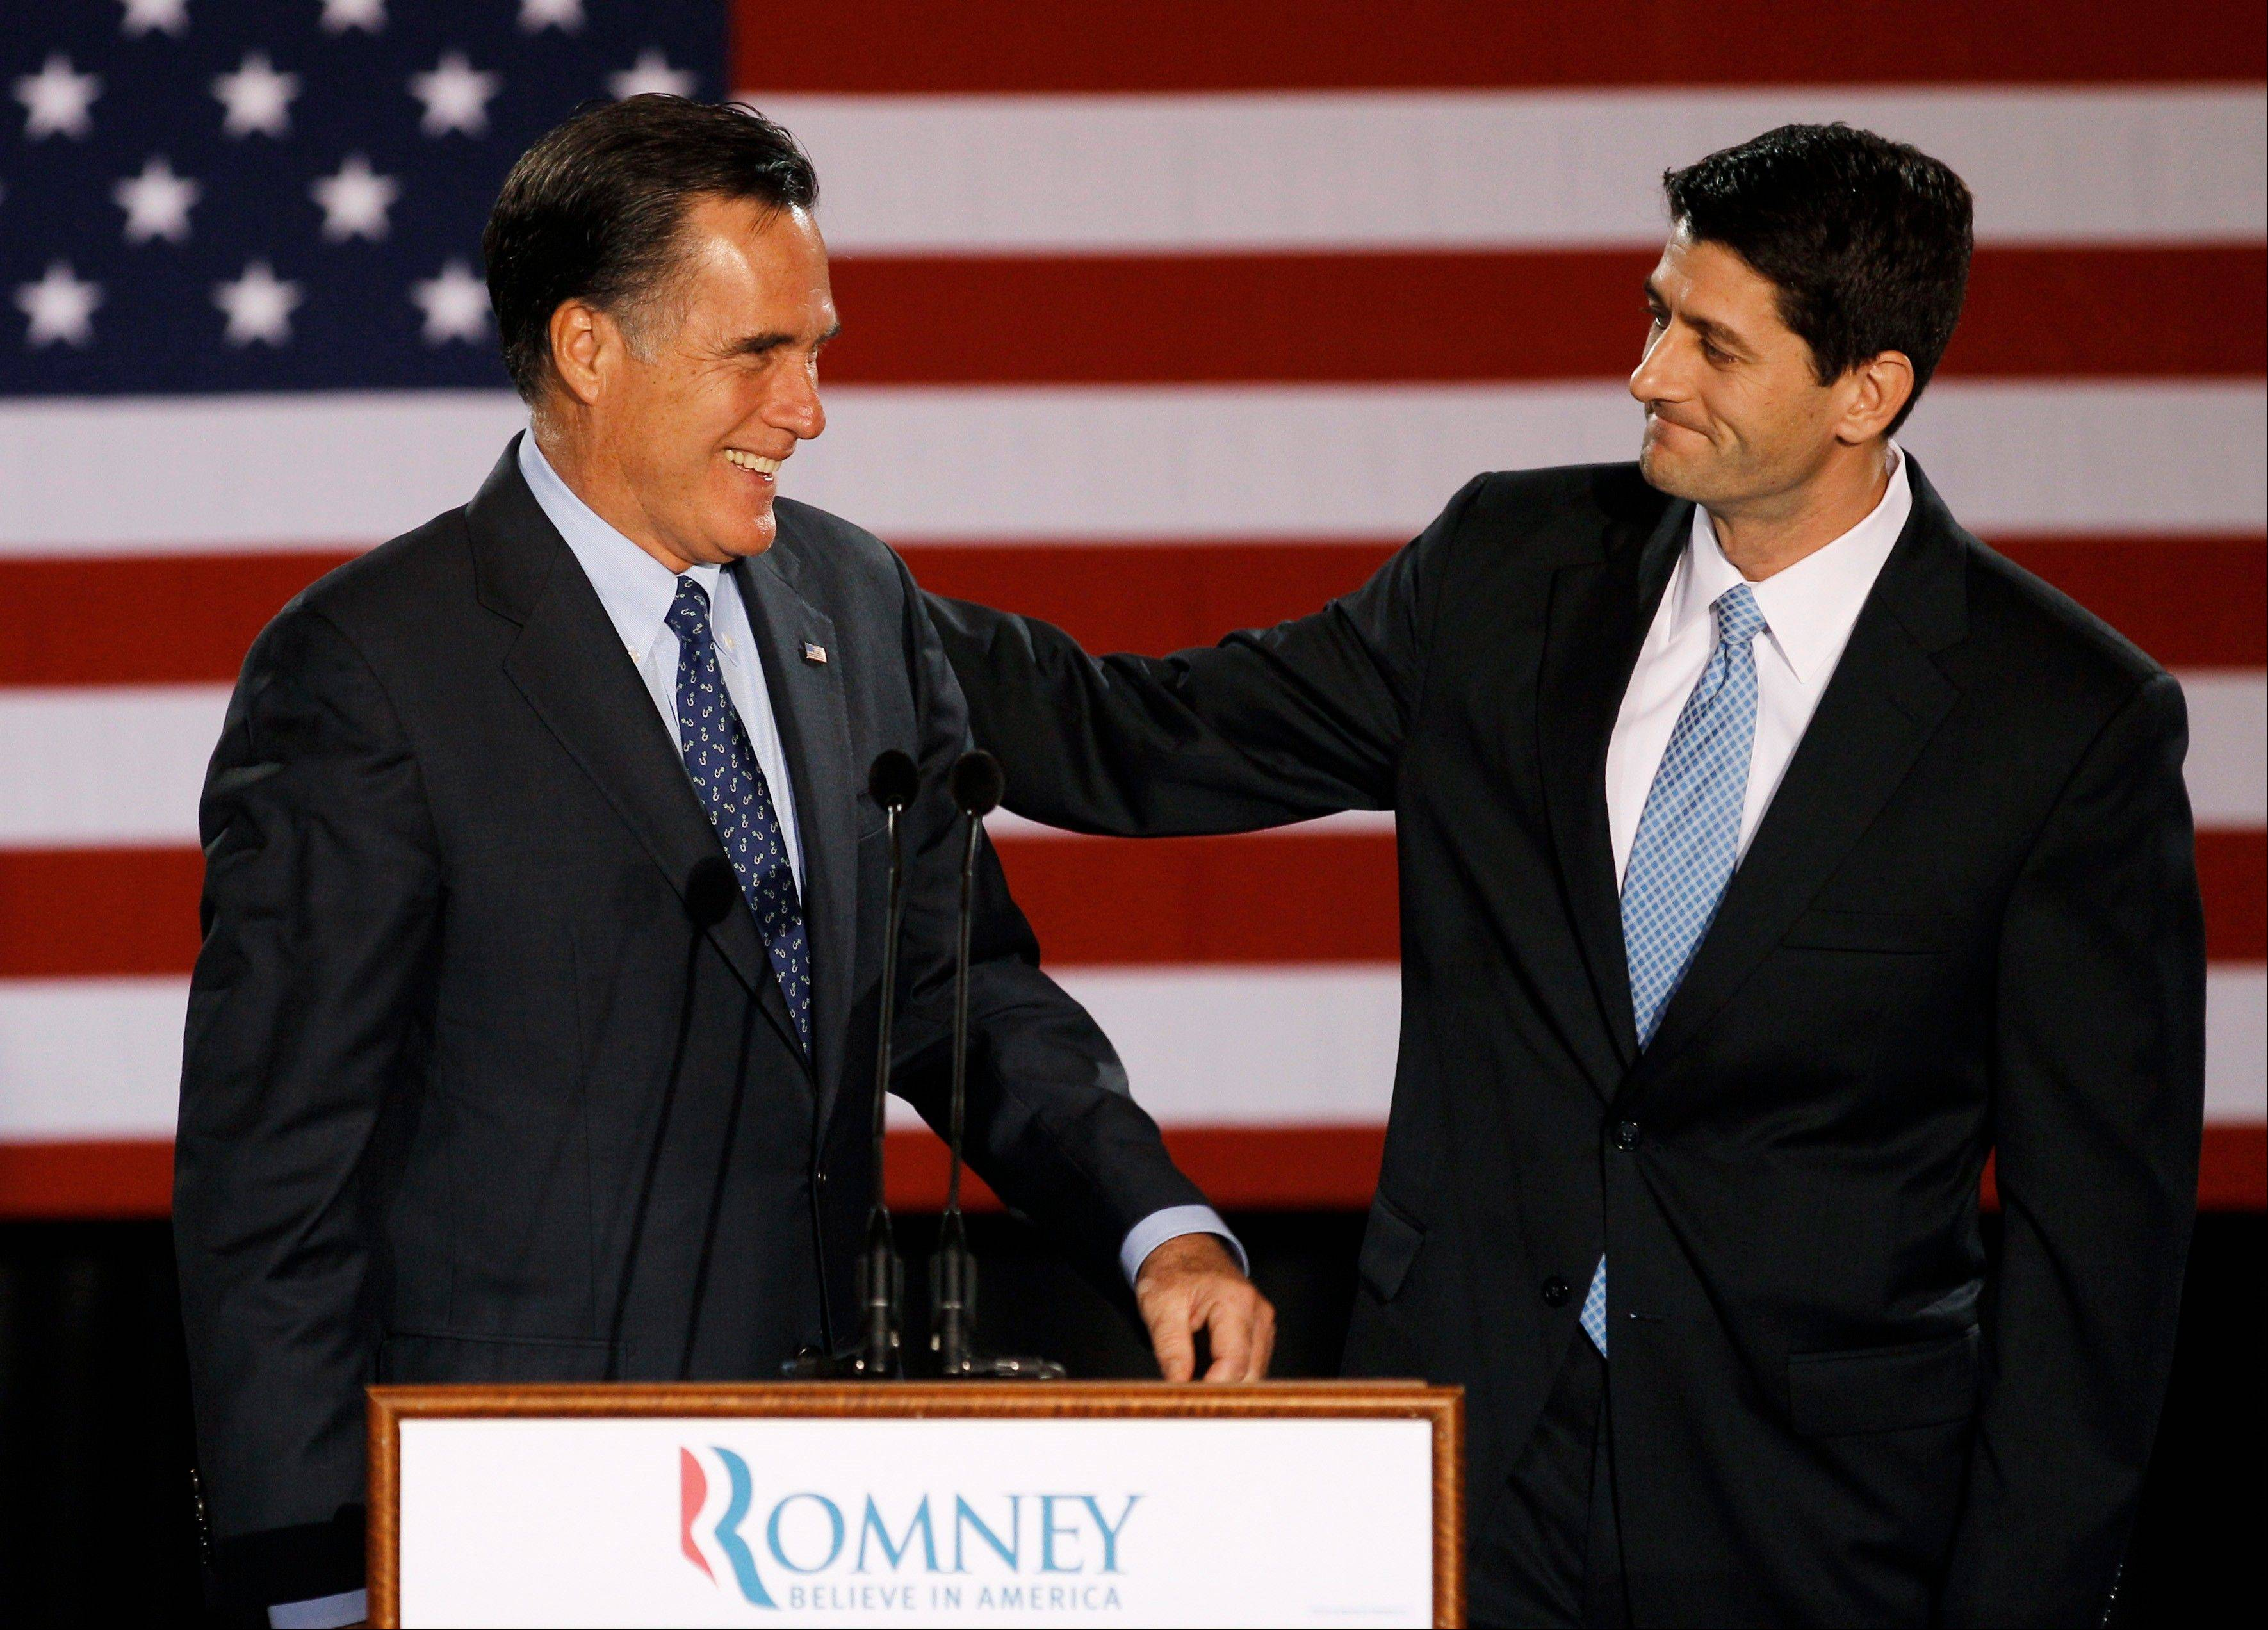 House Budget Committee Chairman Rep. Paul Ryan, R-Wis. introduces Republican presidential candidate, former Massachusetts Gov. Mitt Romney in Milwaukee, in this April 3, 2012 file photo. (AP Photo)